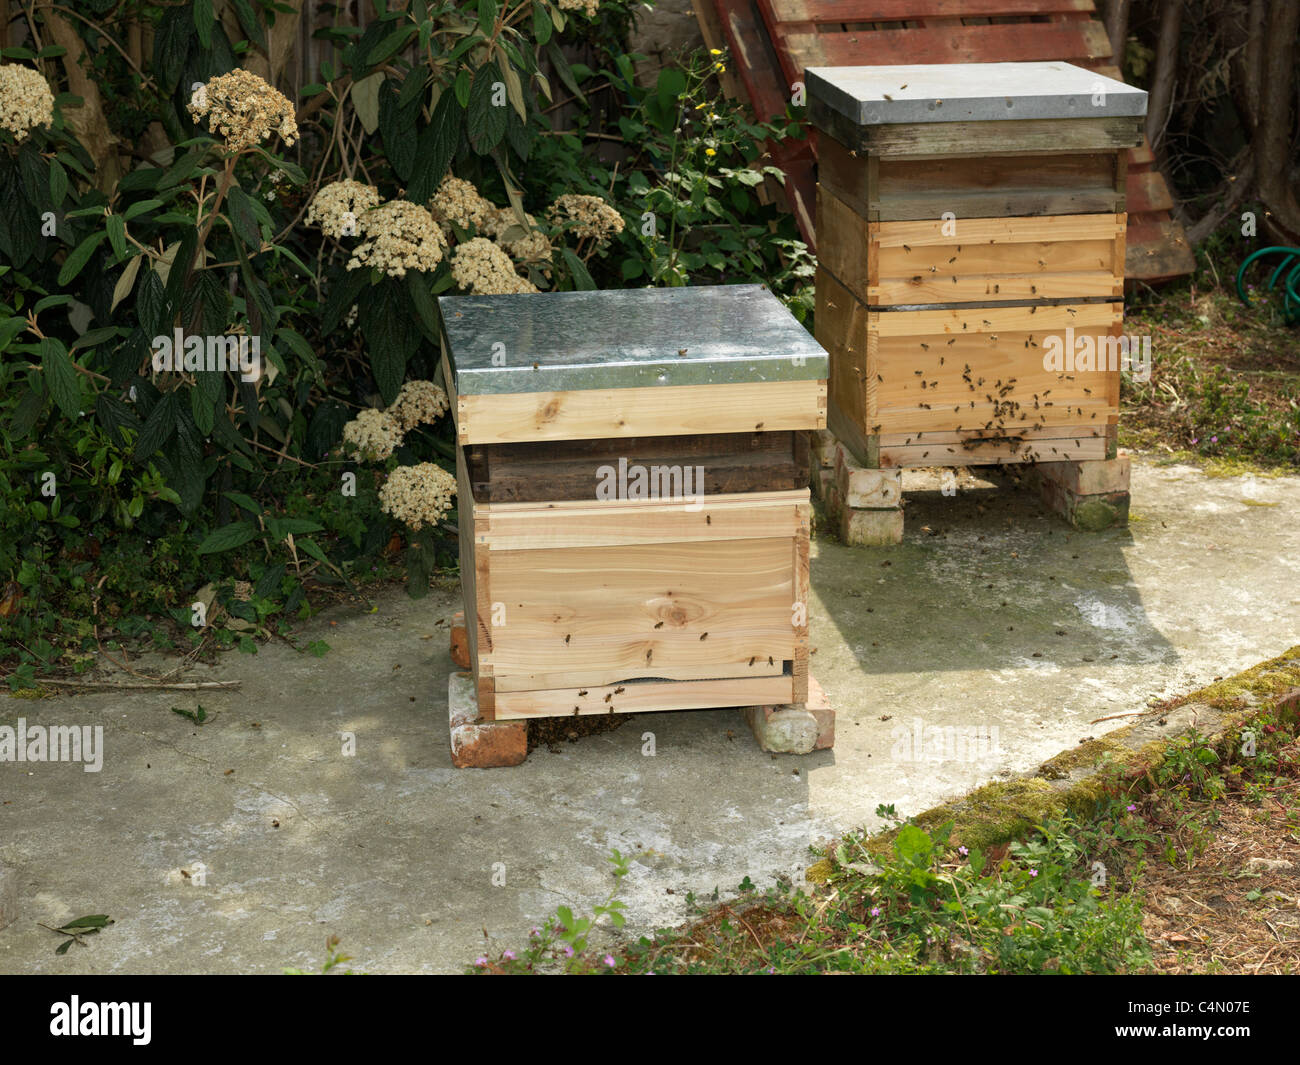 Two Bee Hives For Honey Bees In A Garden - Stock Image